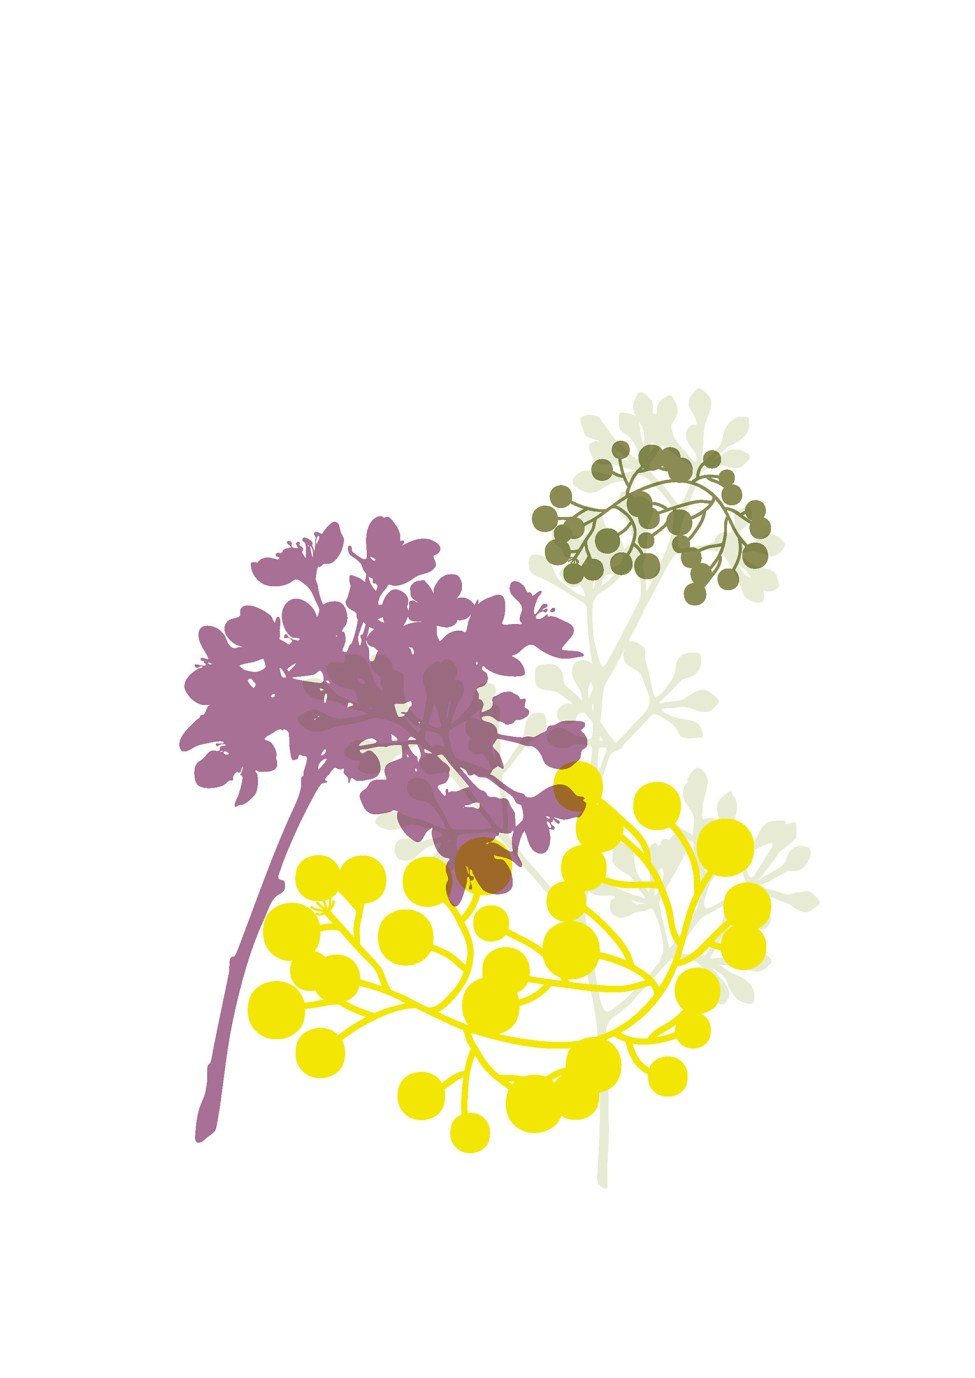 australian-flowers-illustration-02